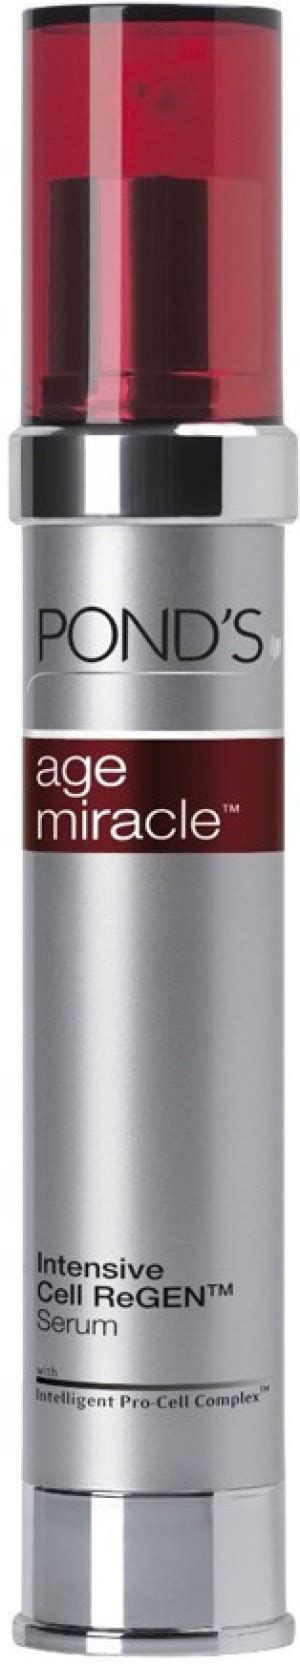 Ponds Age Miracle Serum Review ponds age miracle intensive cell regen serum price in